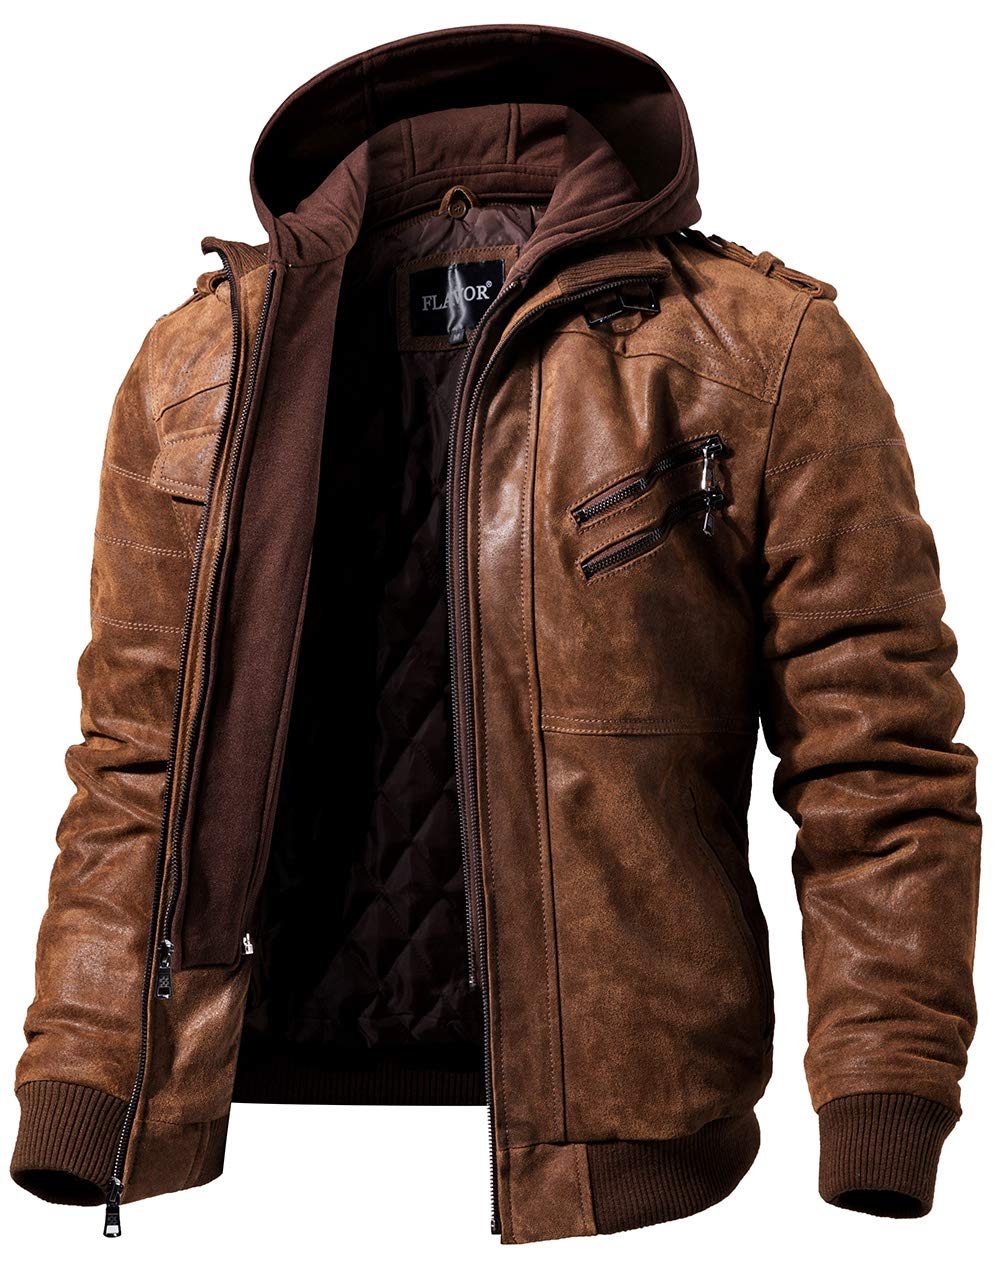 FLAVOR Men Brown Leather Motorcycle Jacket with Removable Hood (Large (US Standard), Brown) by FLAVOR